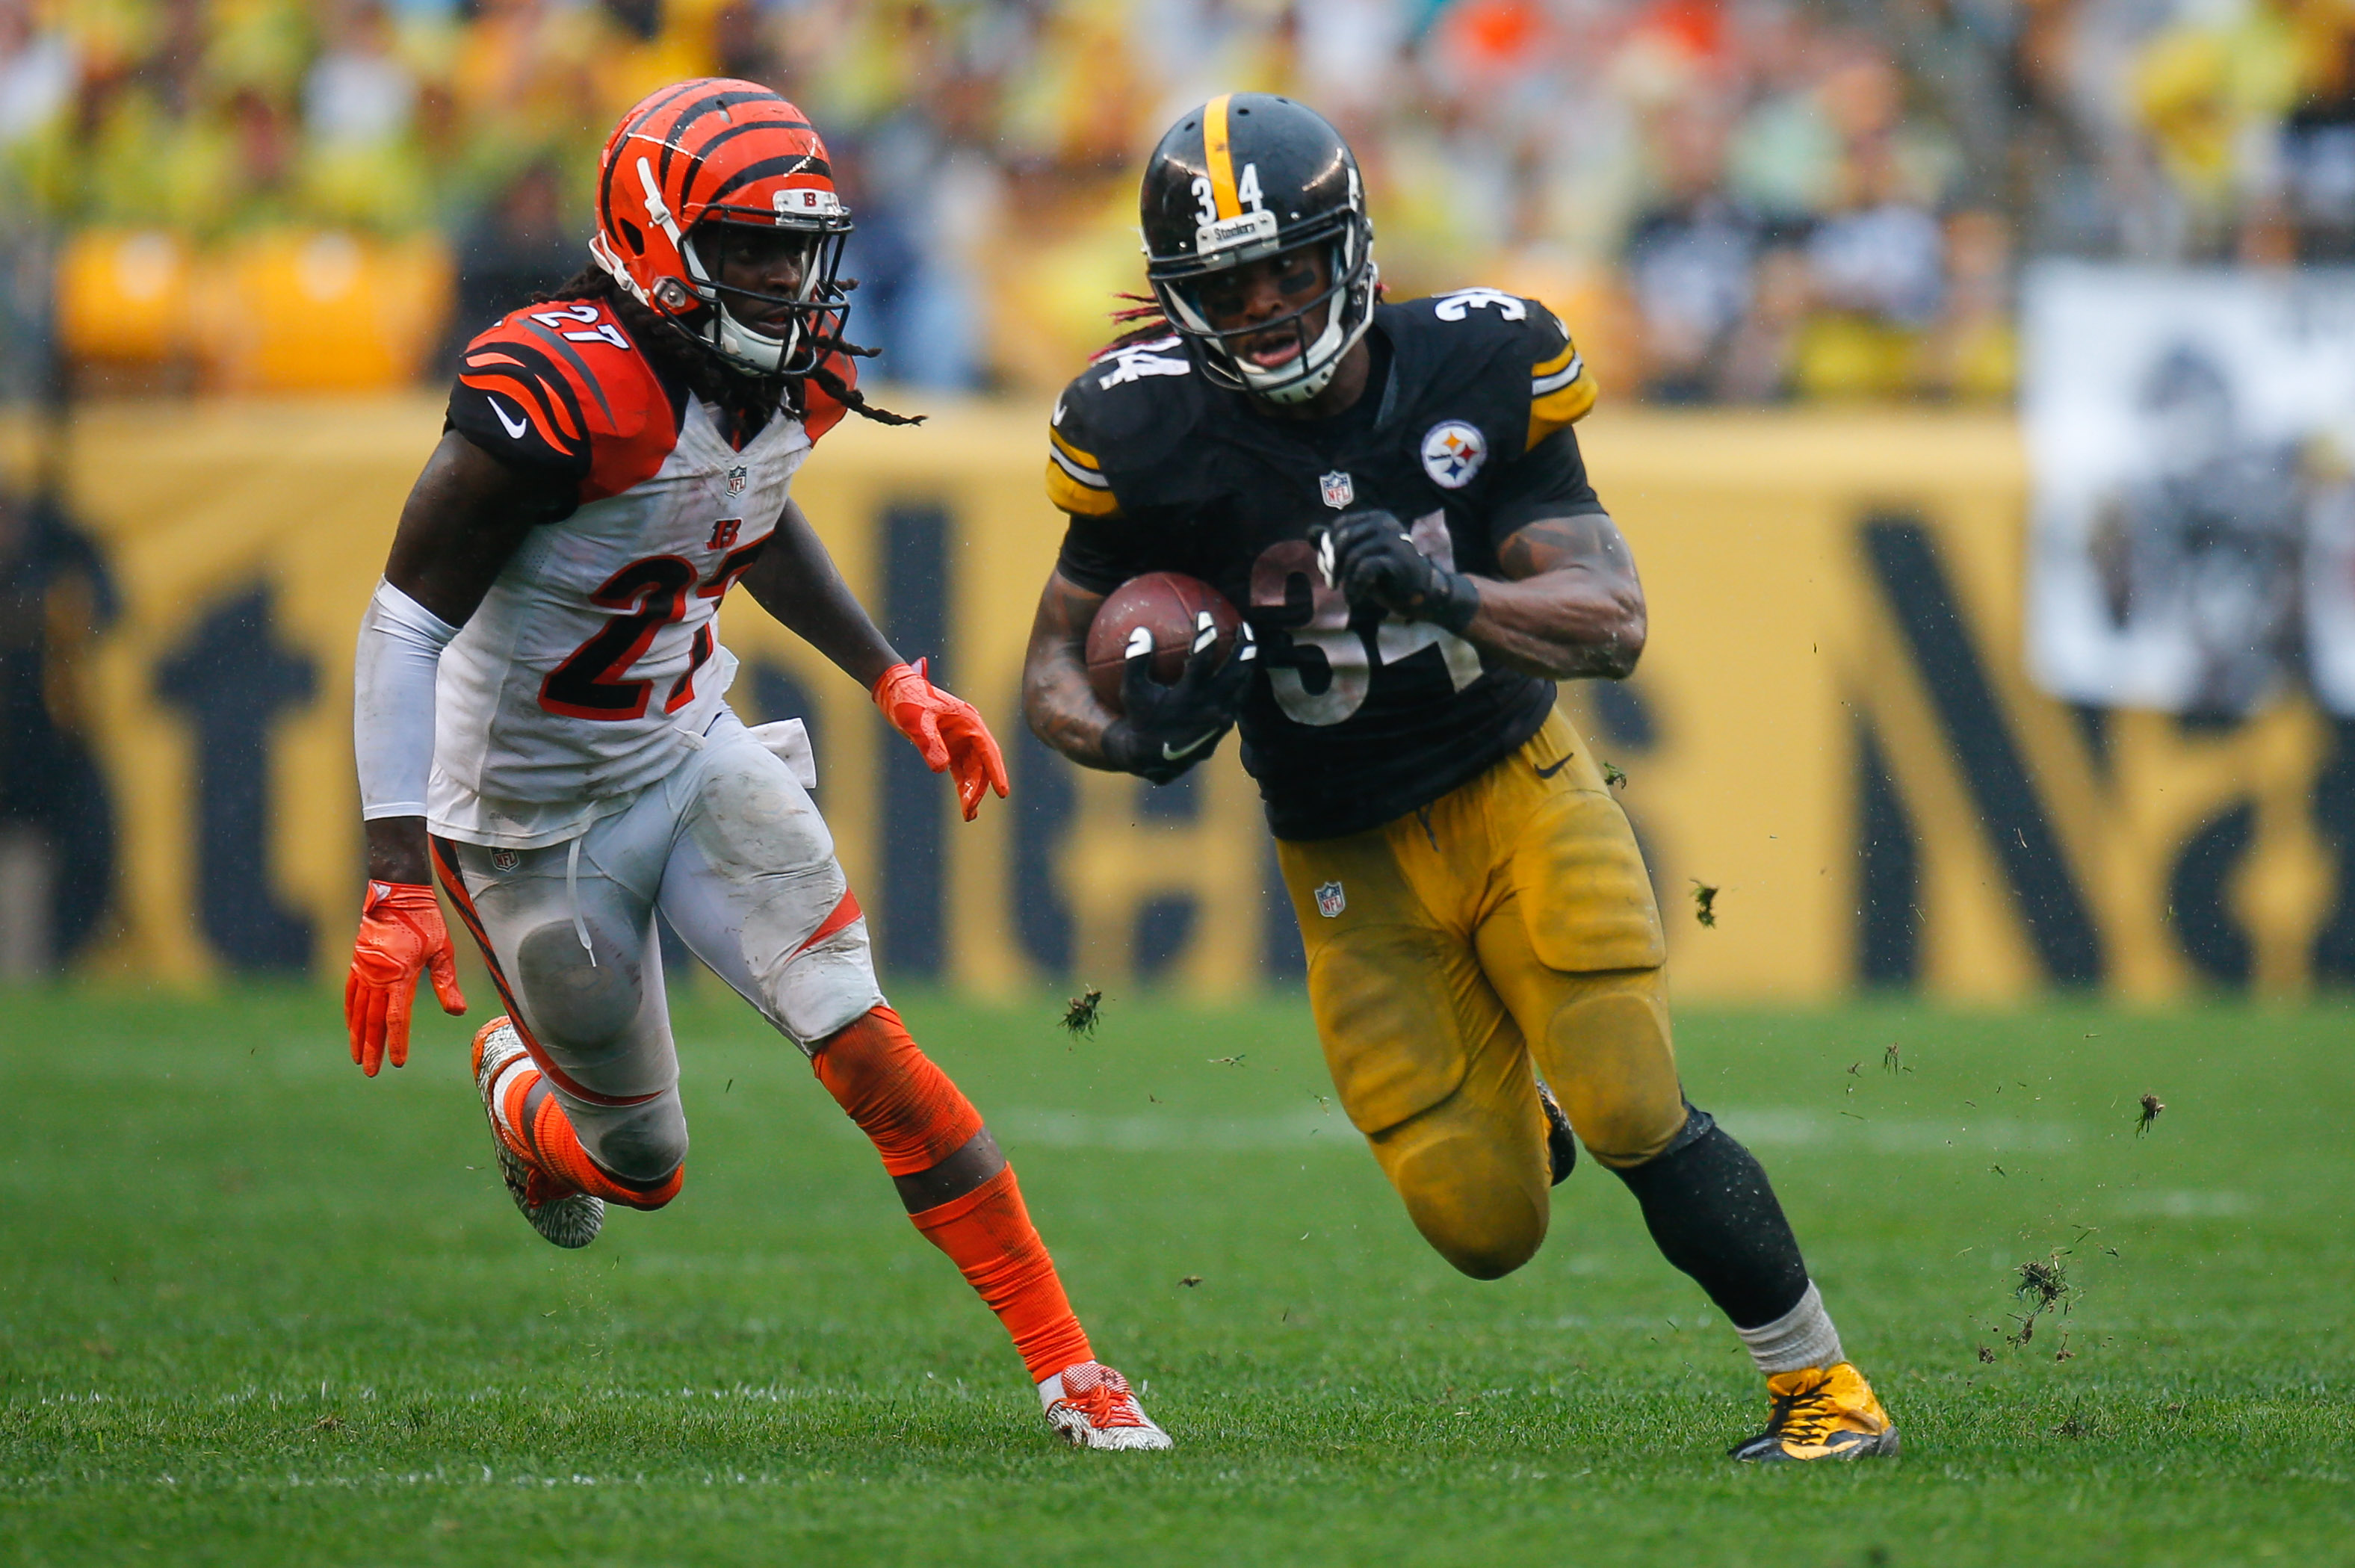 PITTSBURGH PA SEPTEMBER 18 DeAngelo Williams 34 of the